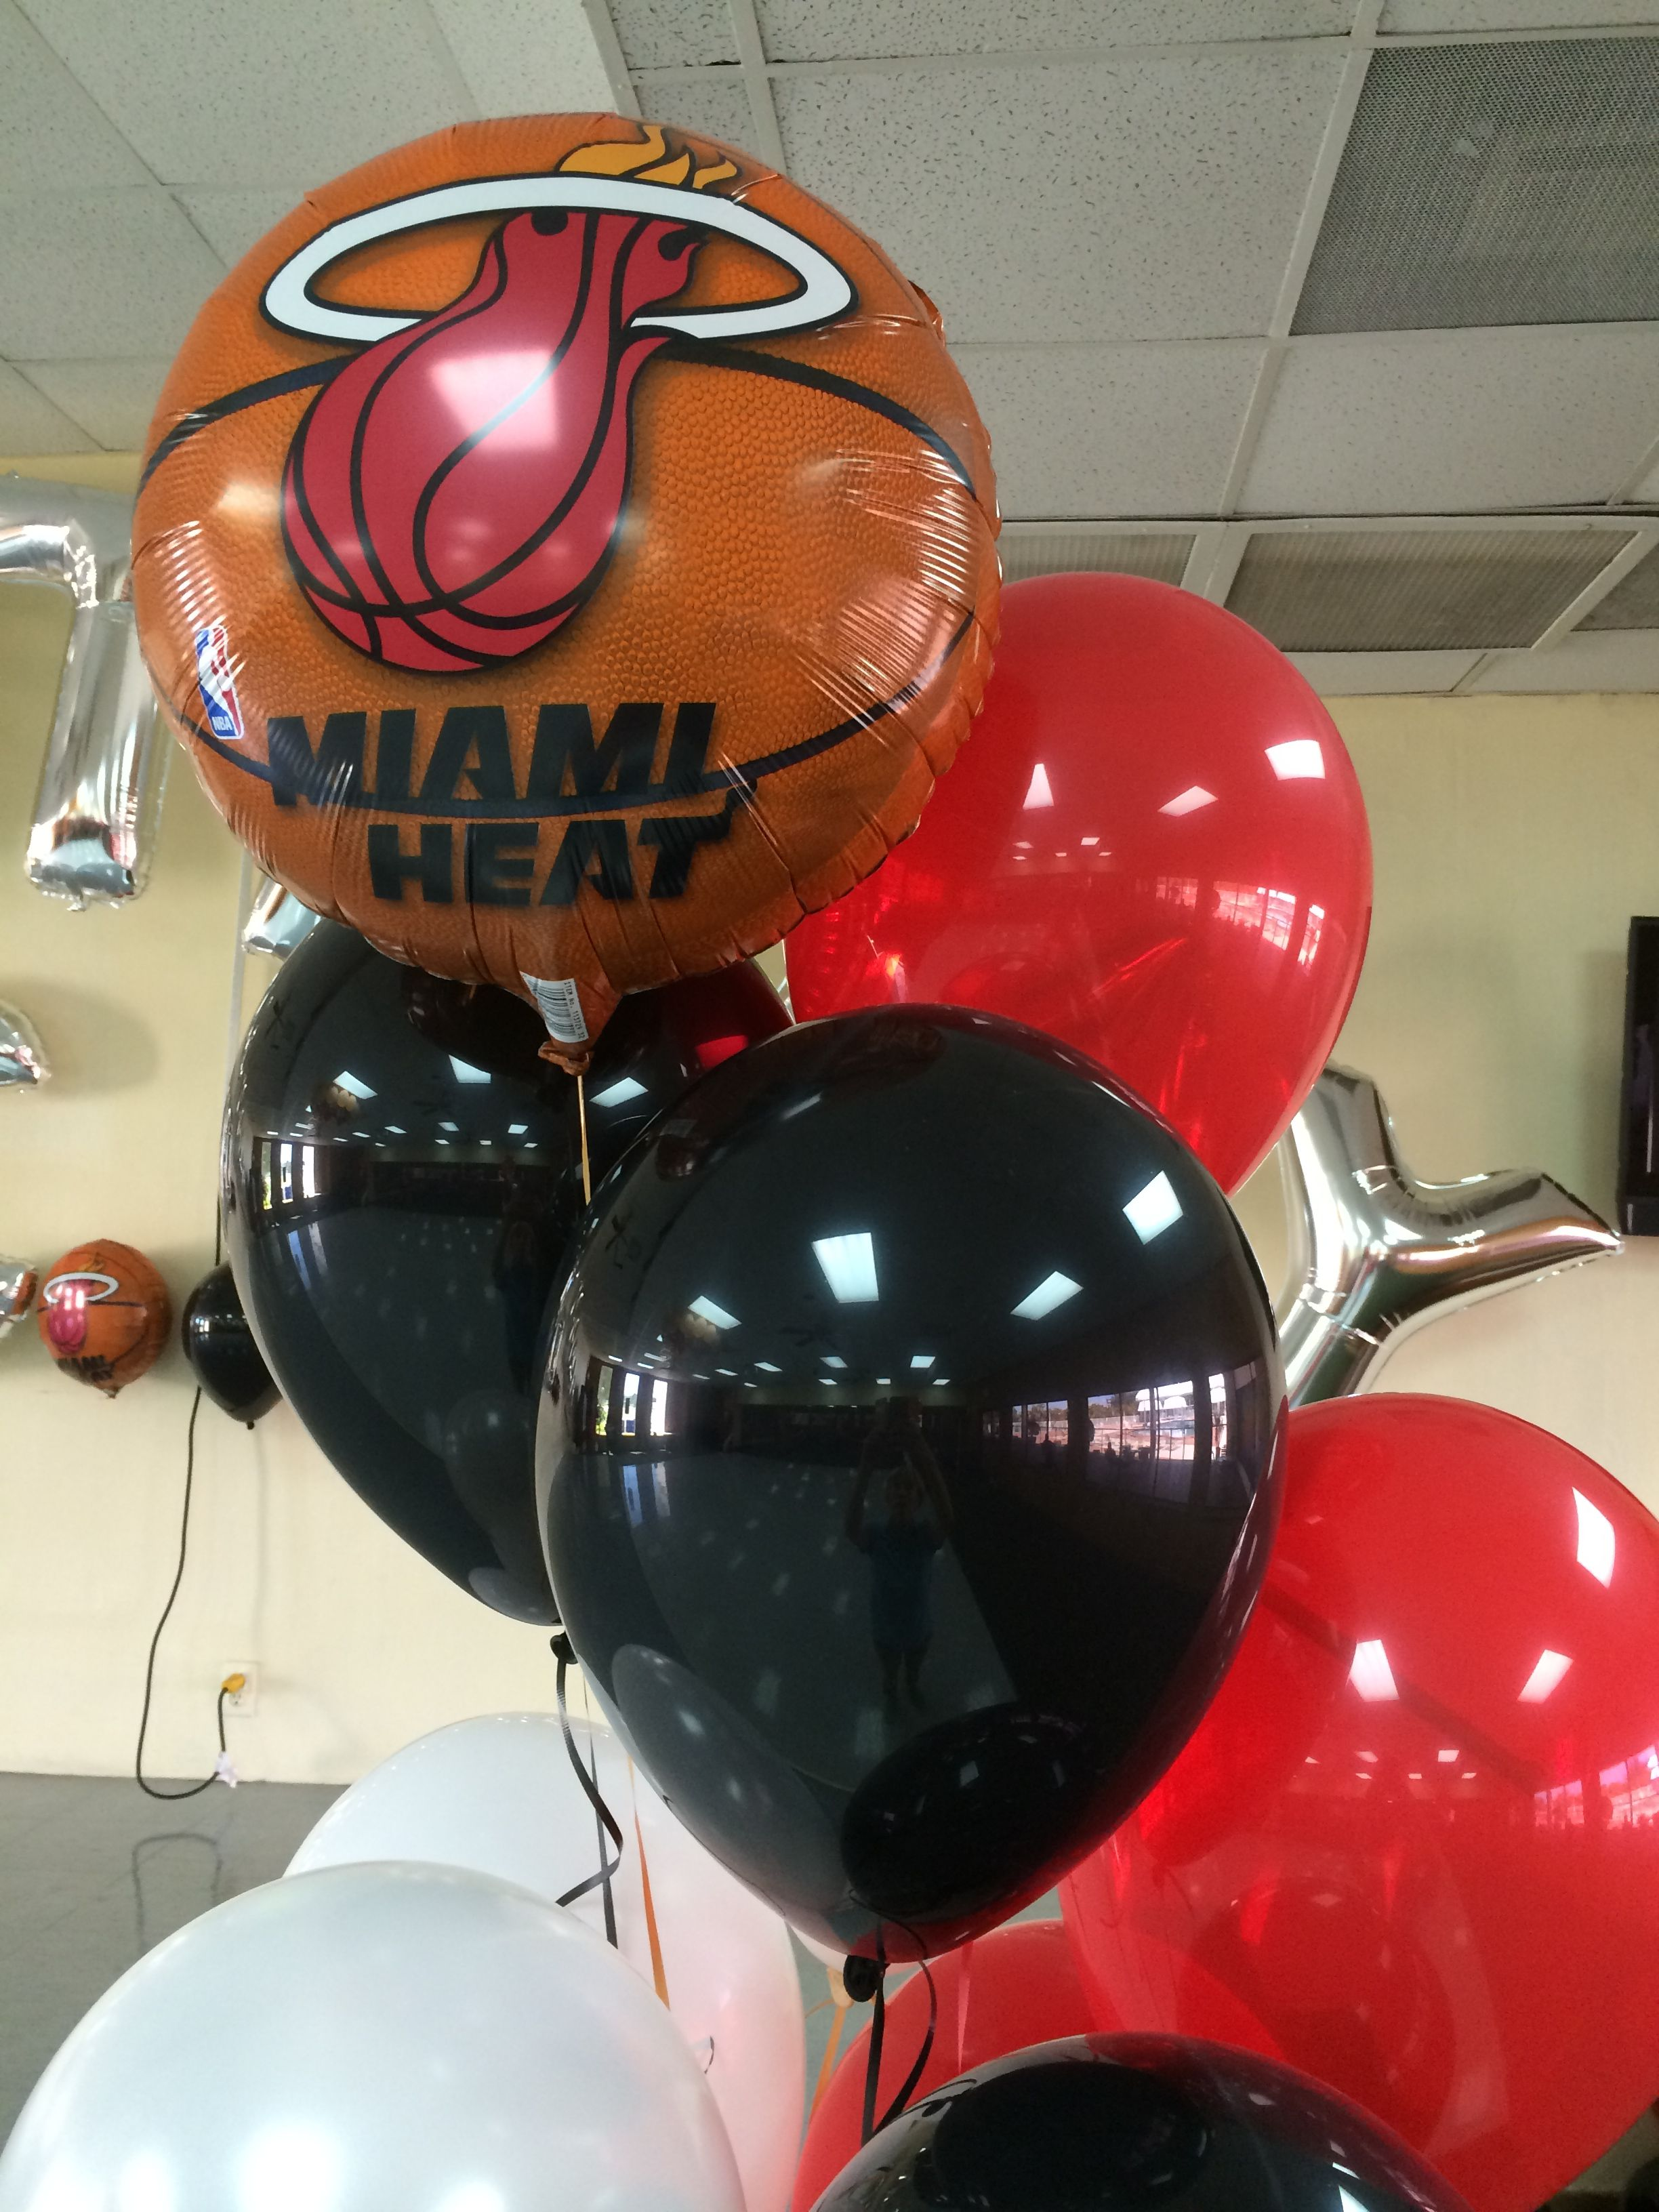 Party decorations miami baby shower balloon decorations - Miami Heat Balloon Decoration Balloon Centerpiece Miami Heat Theme Party Decoration